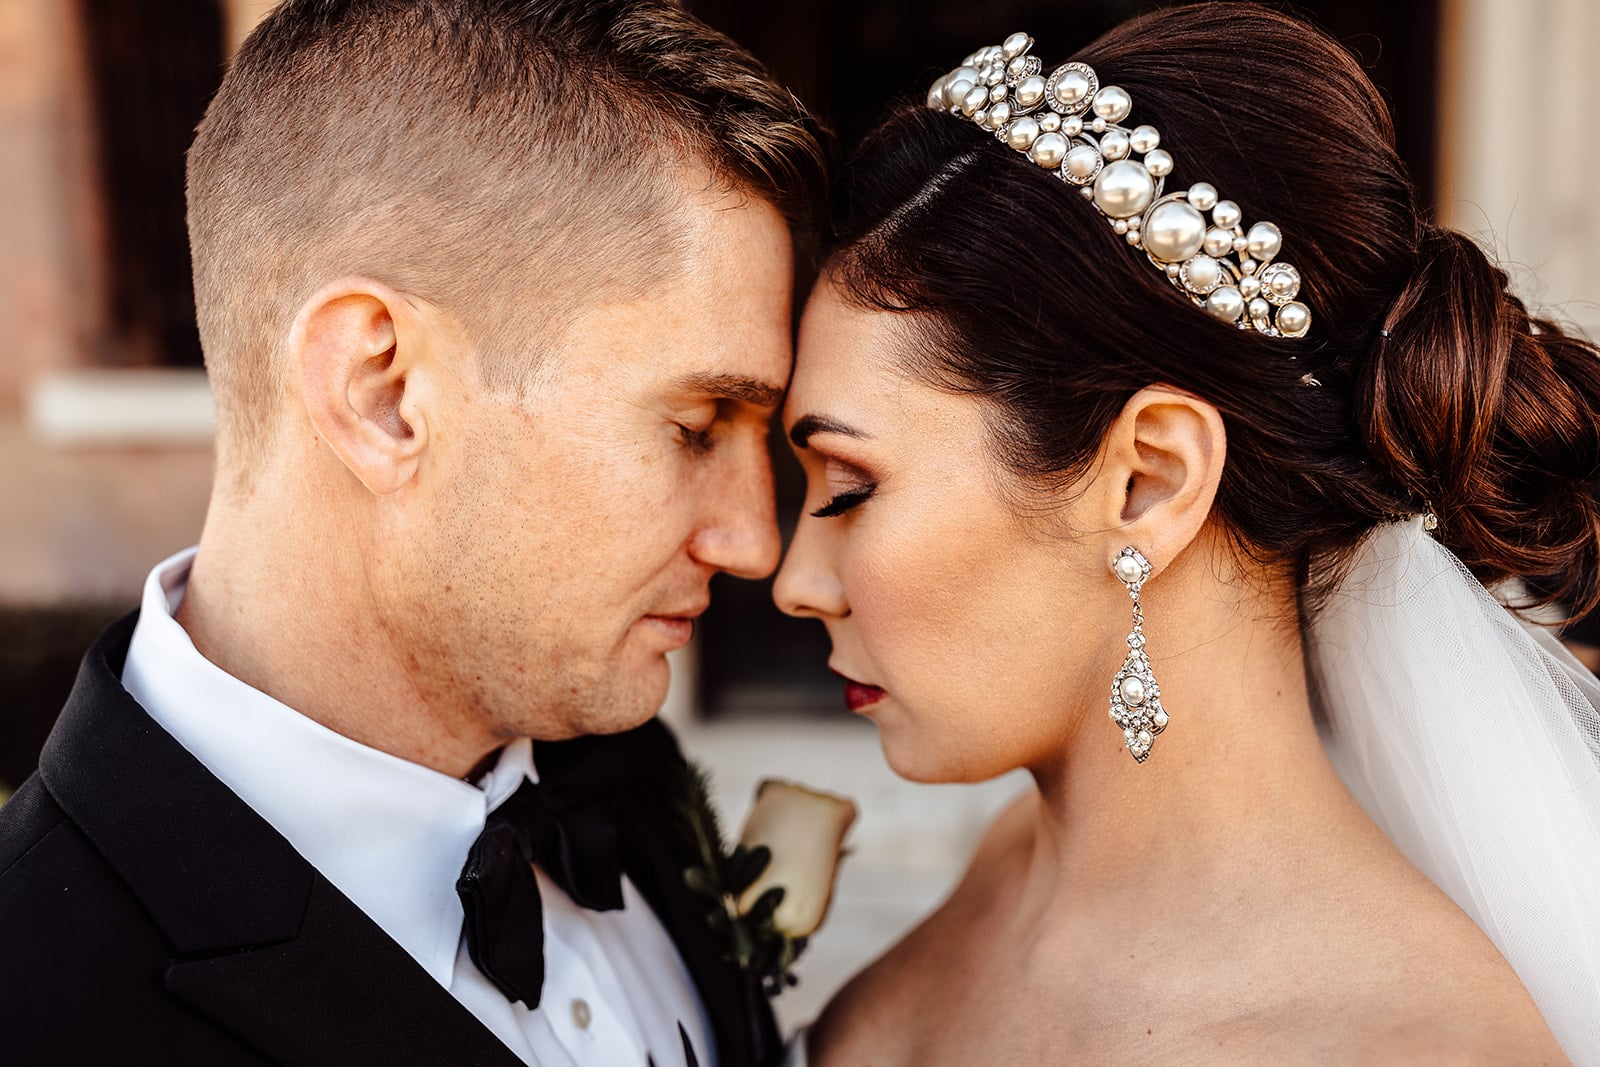 close up of bride and groom touching foreheads together with eyes closed and brides pearl and silver crown hair piece with dangling silver earring